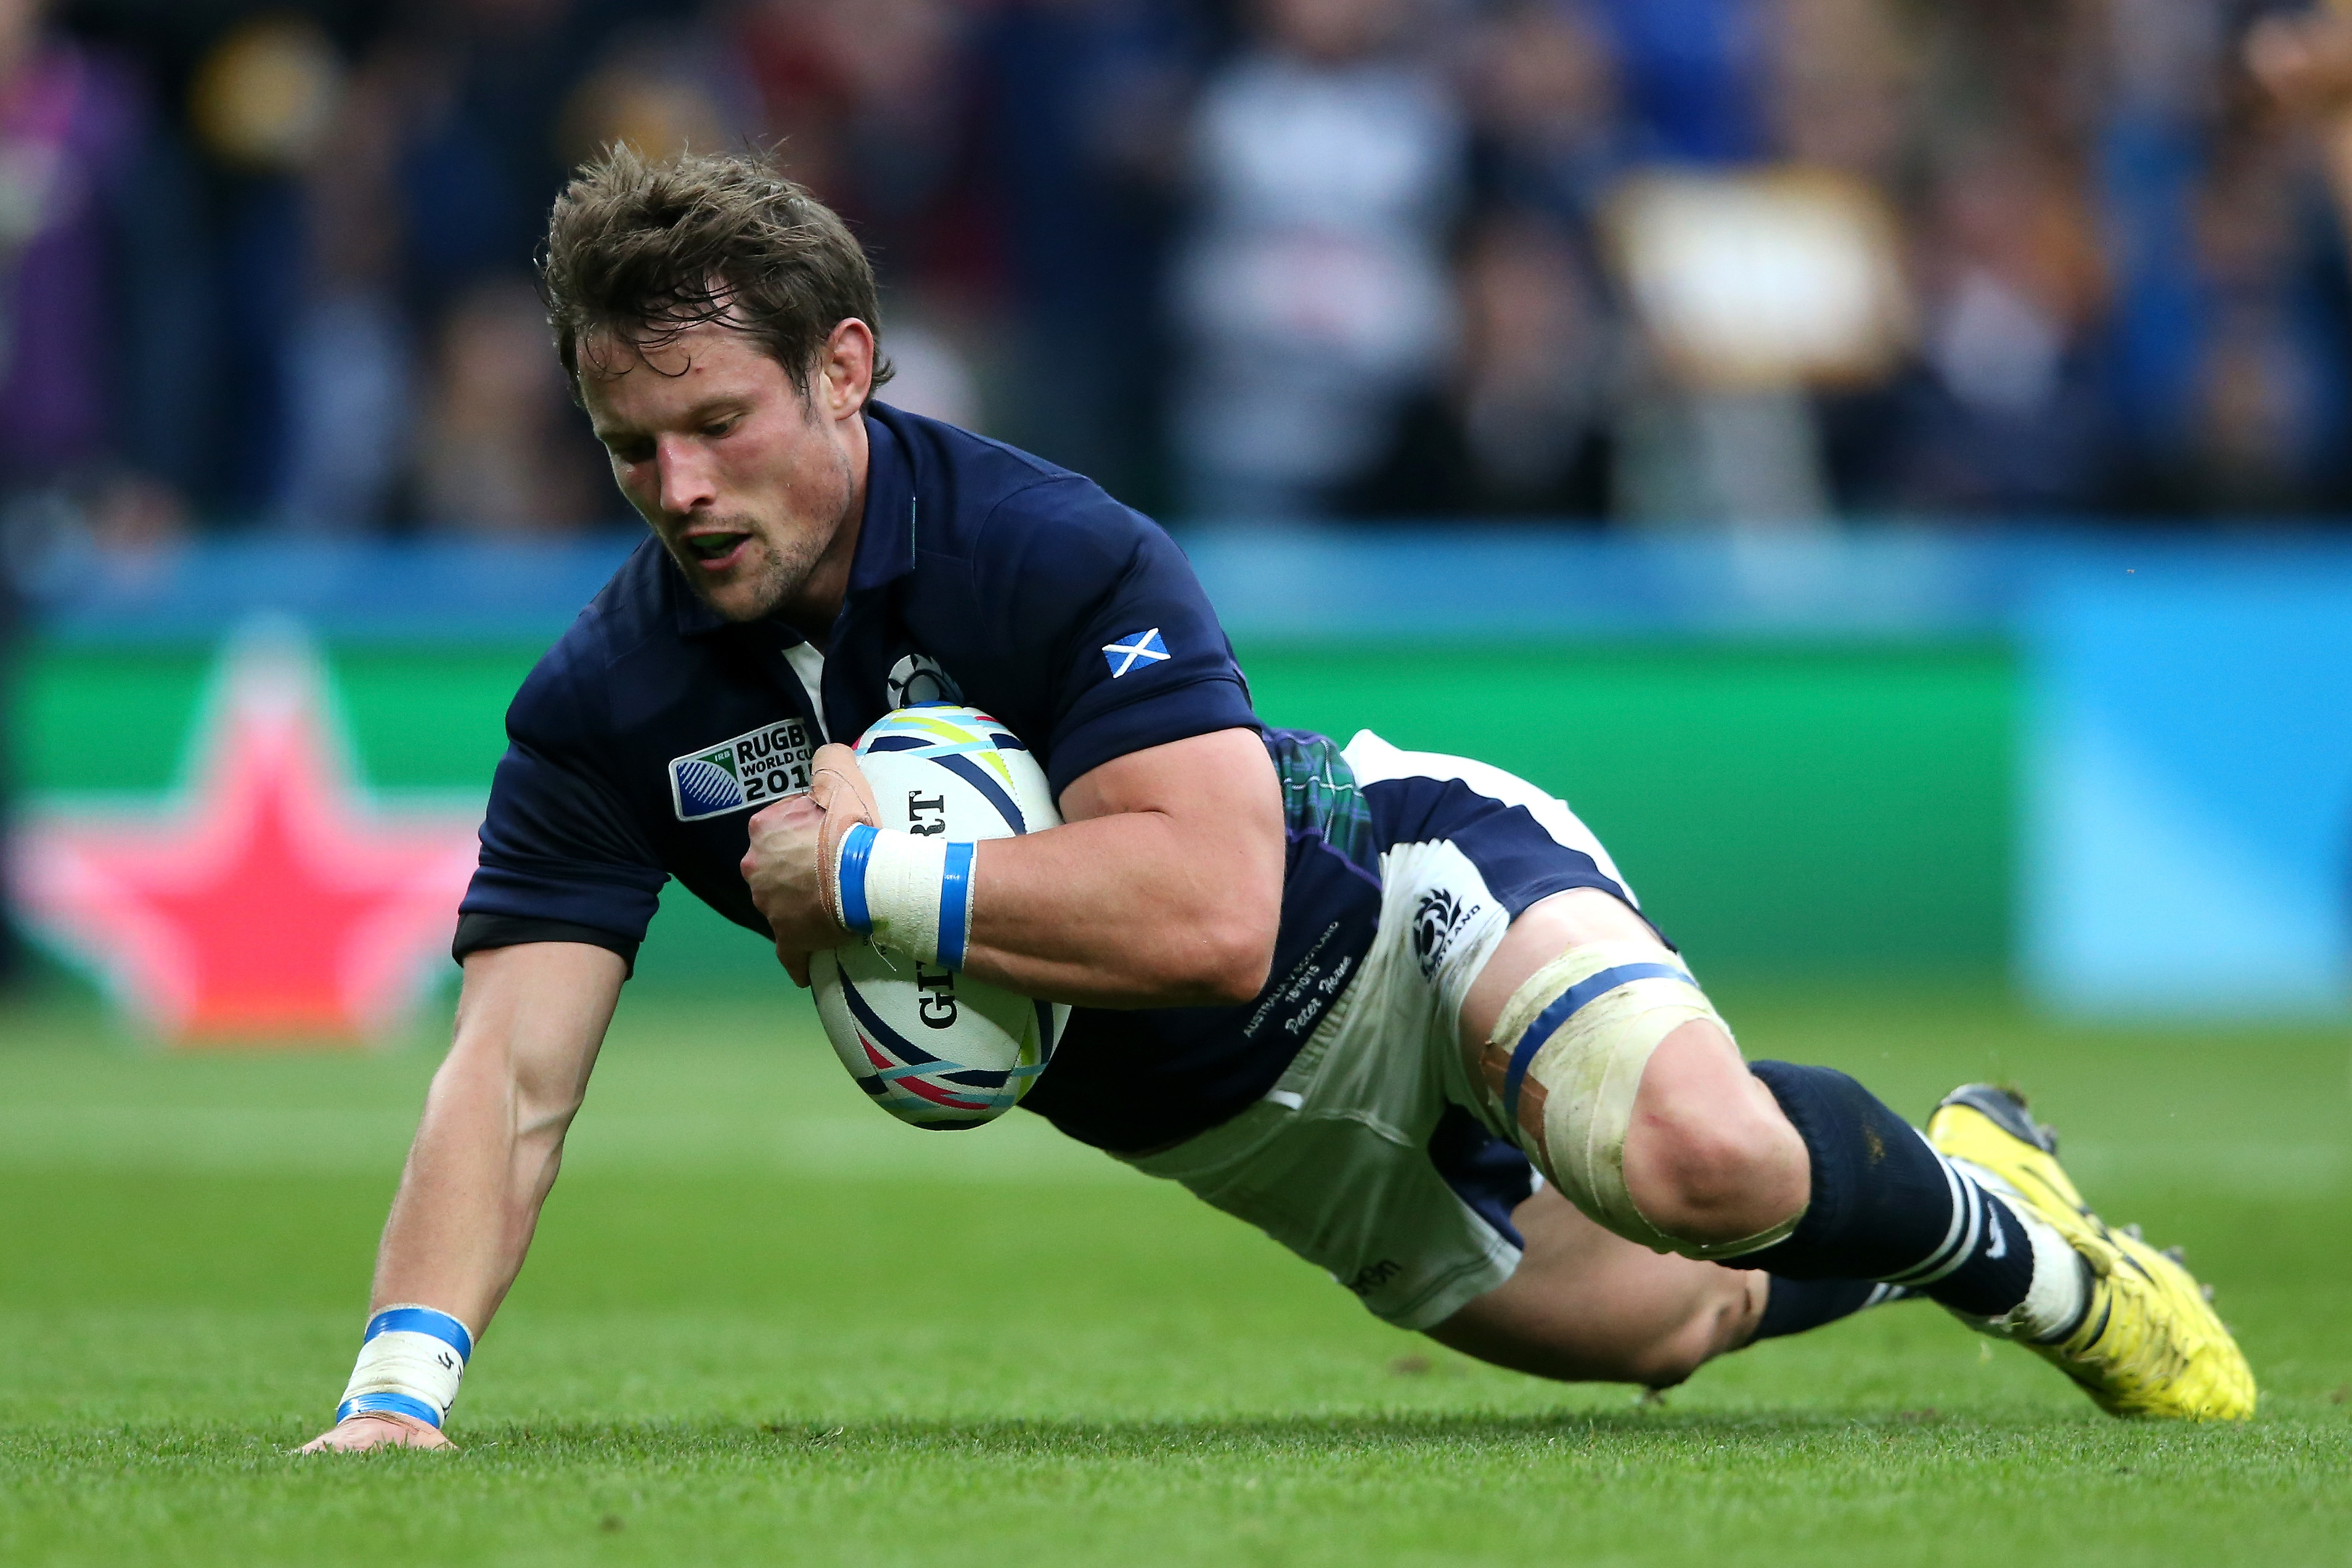 Peter Horne scored for Scotland in the RWC quarter-final in 2015.